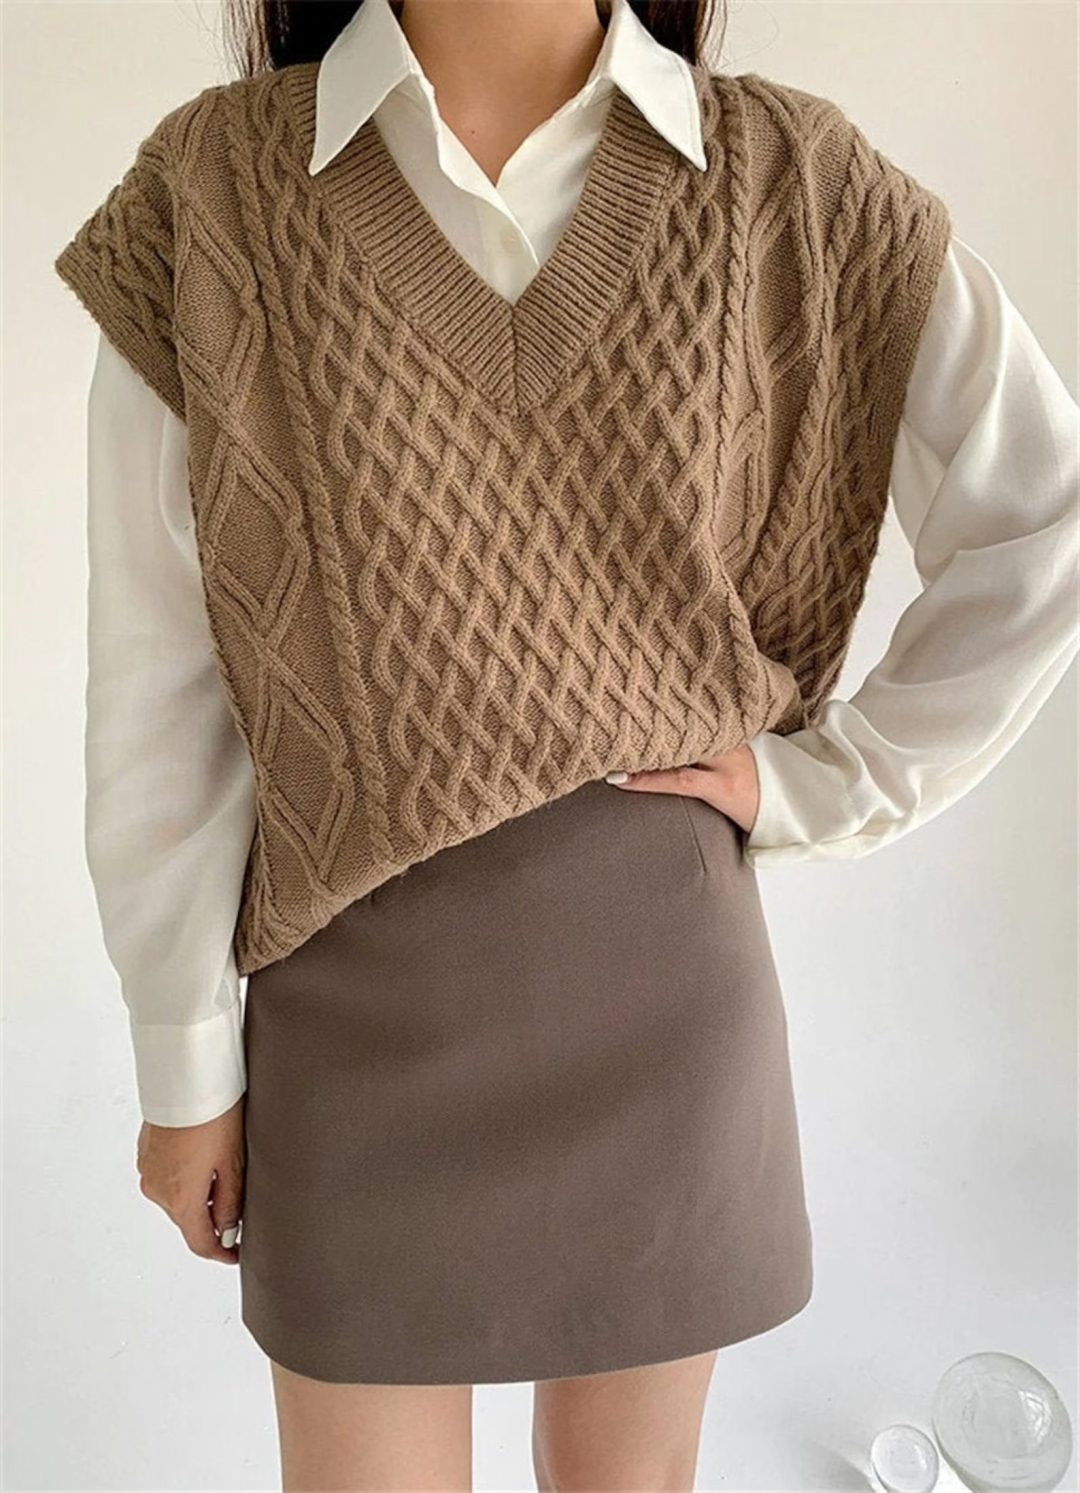 Light Academia Outfits: Beige sweater vest